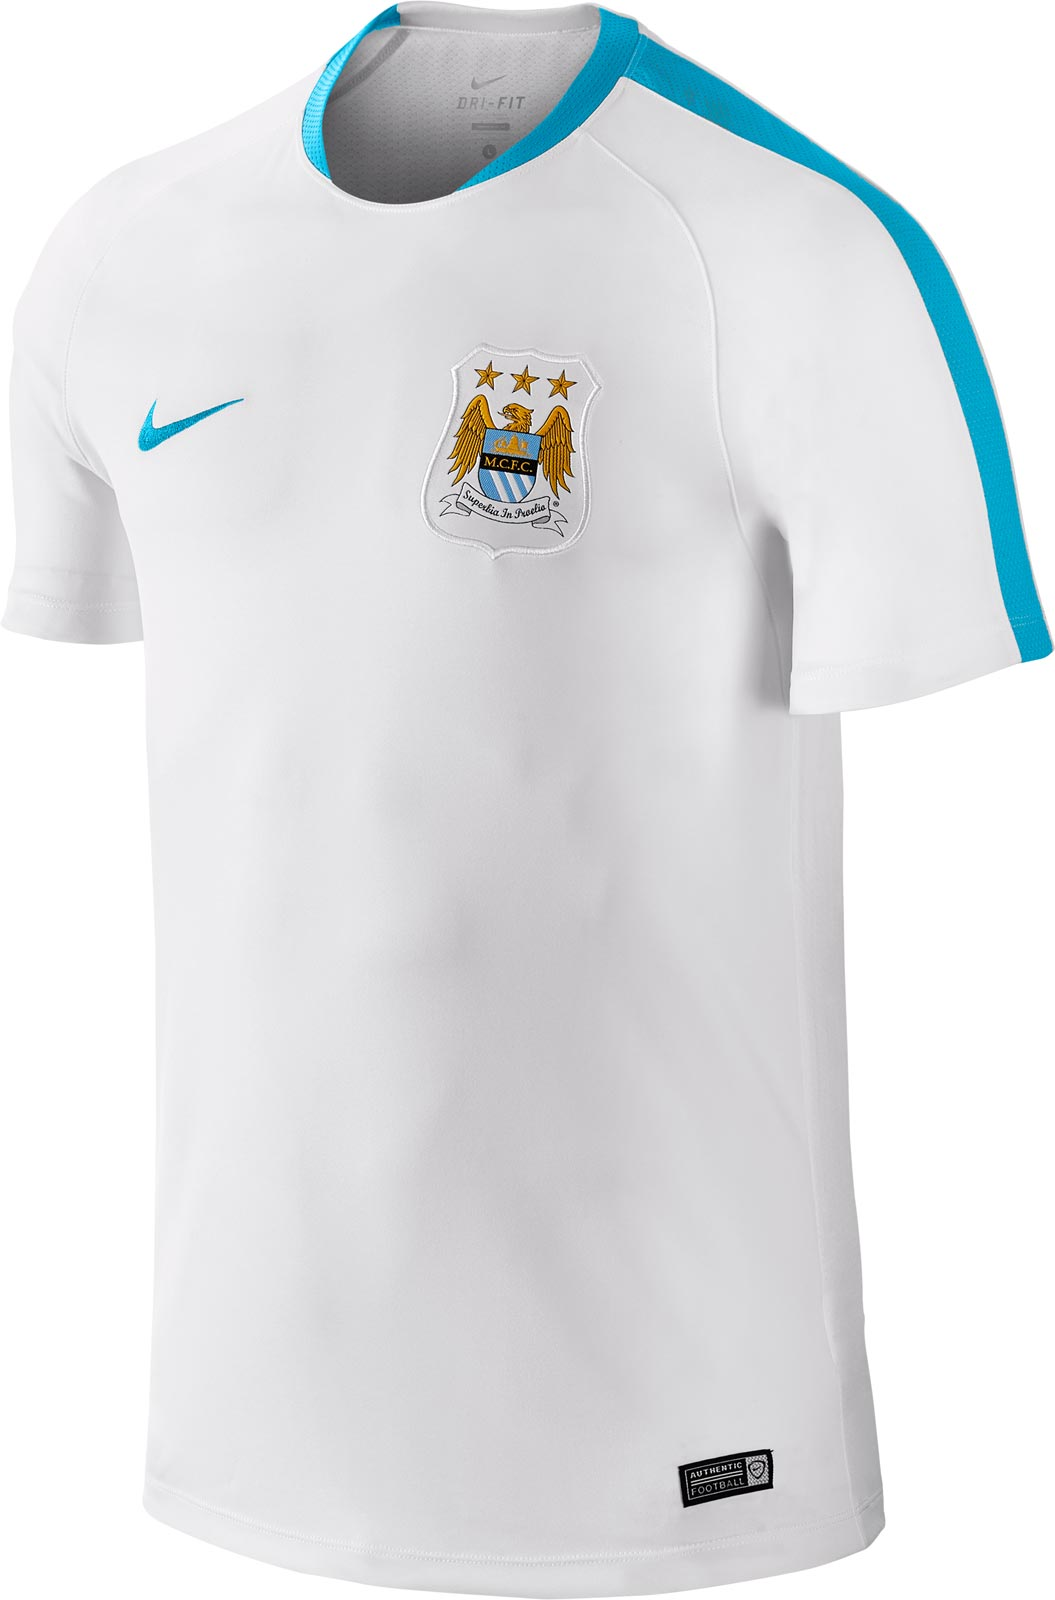 Manchester City 2016 Pre-Match and Training Shirts Released